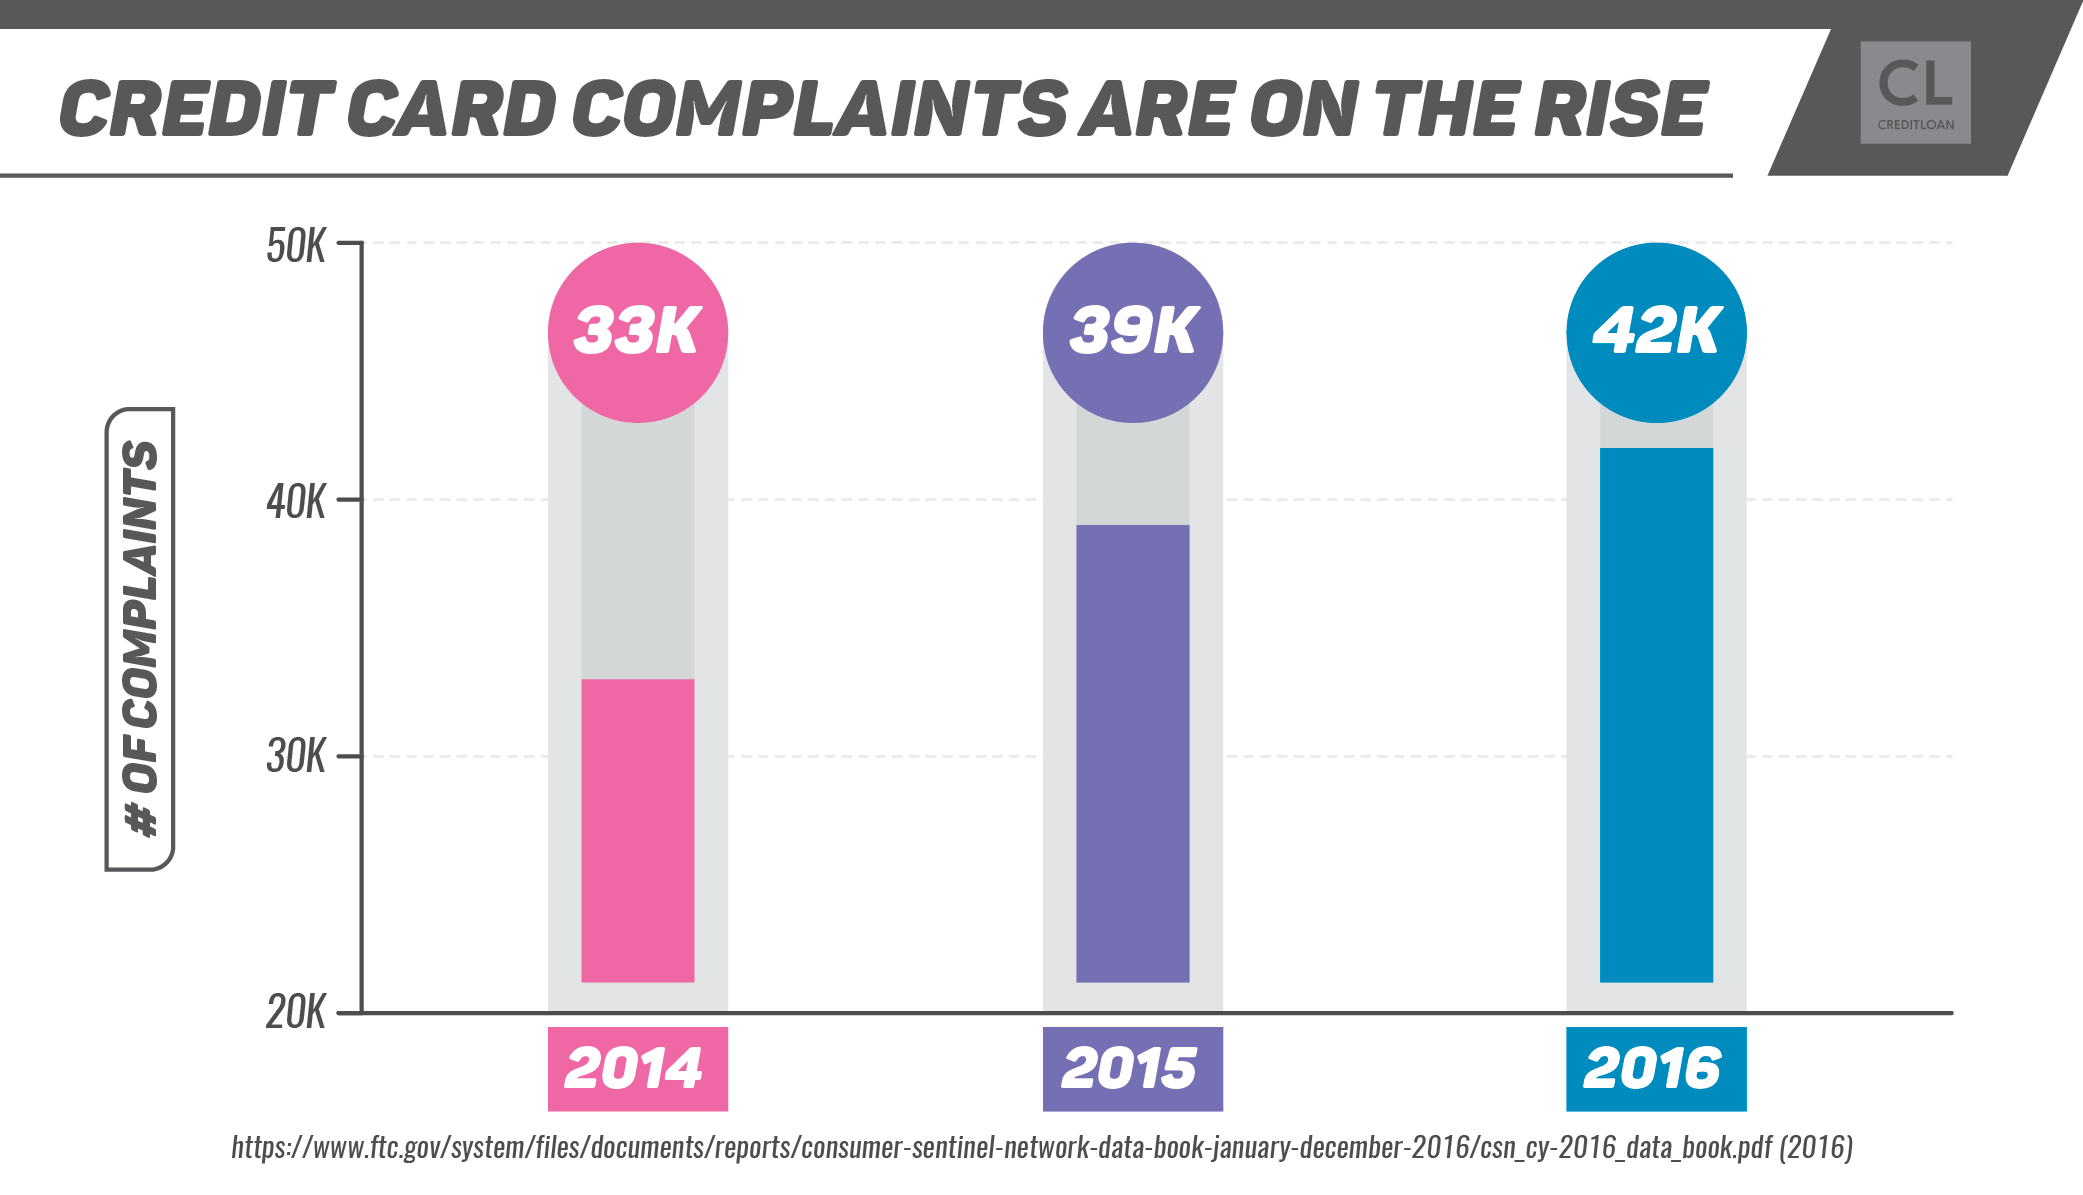 Credit Card Complaints by the Numbers 2014-2016